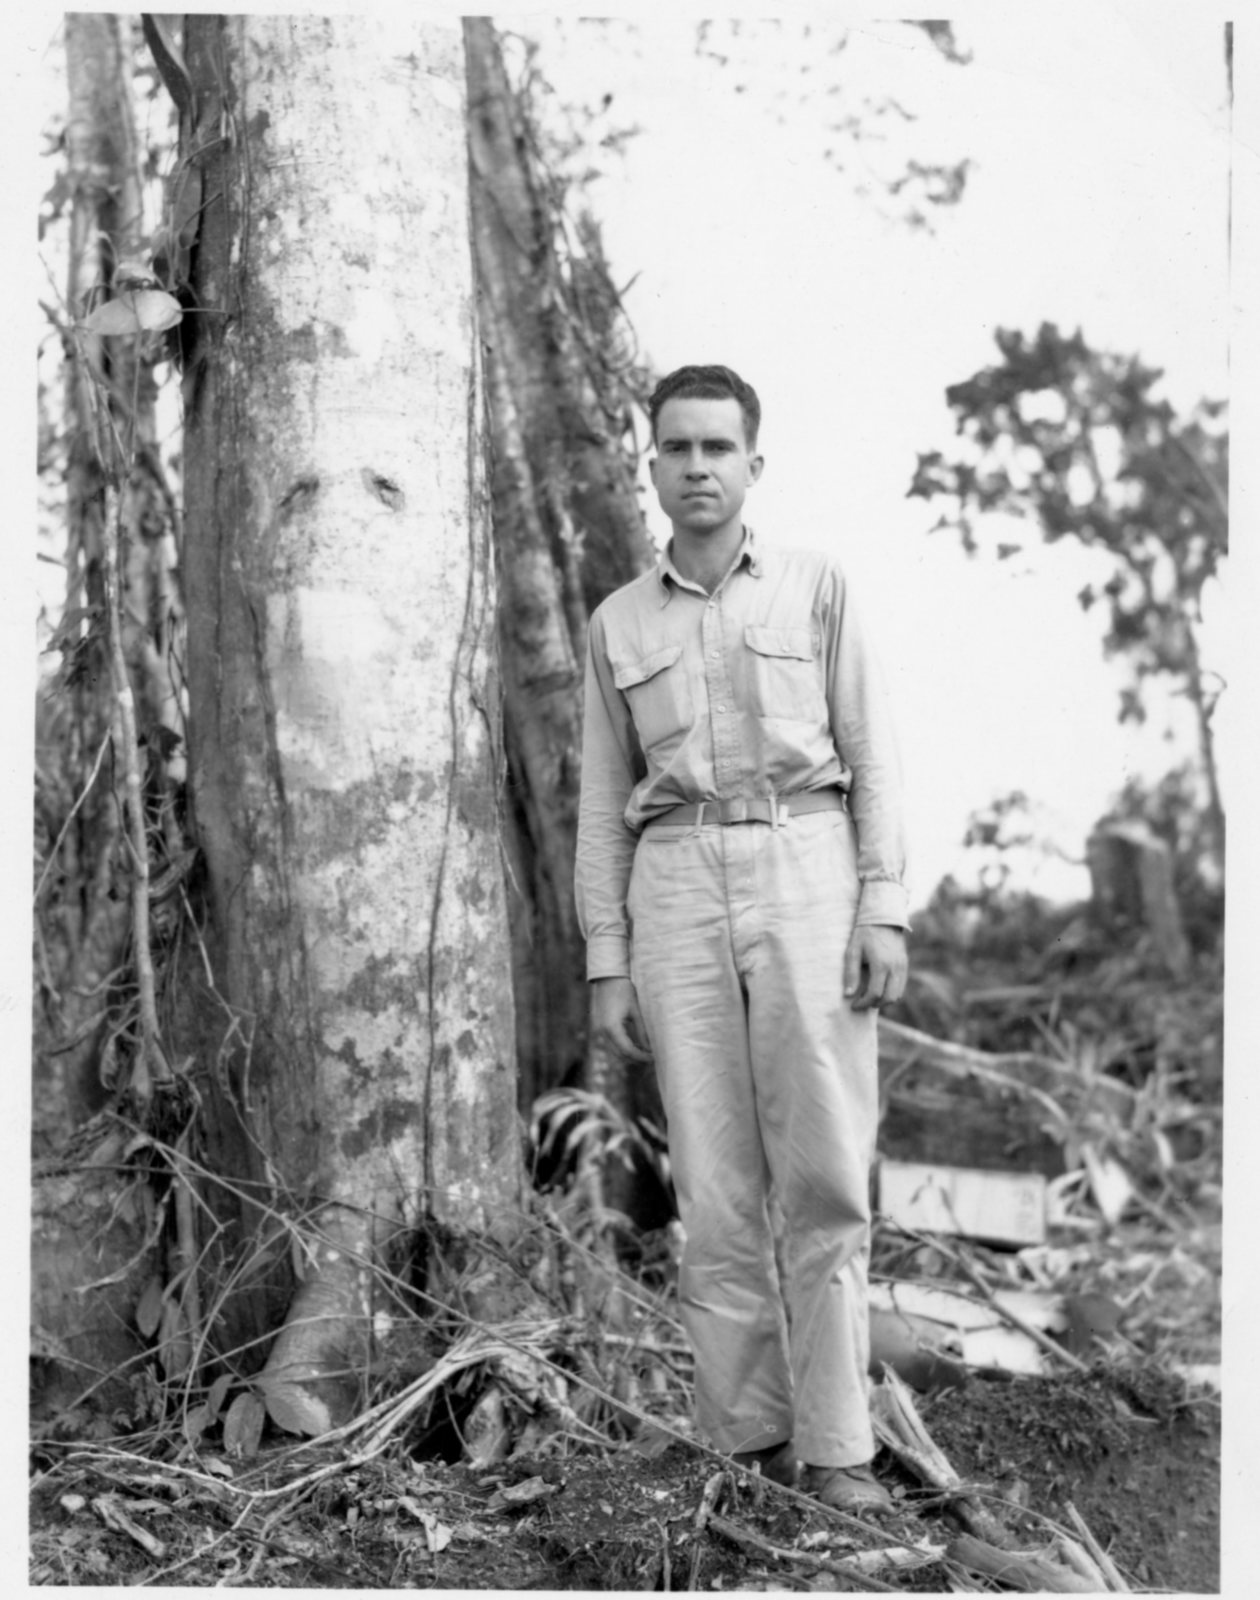 Richard Nixon stands in Naval attire by the side of a tree in the South Pacific